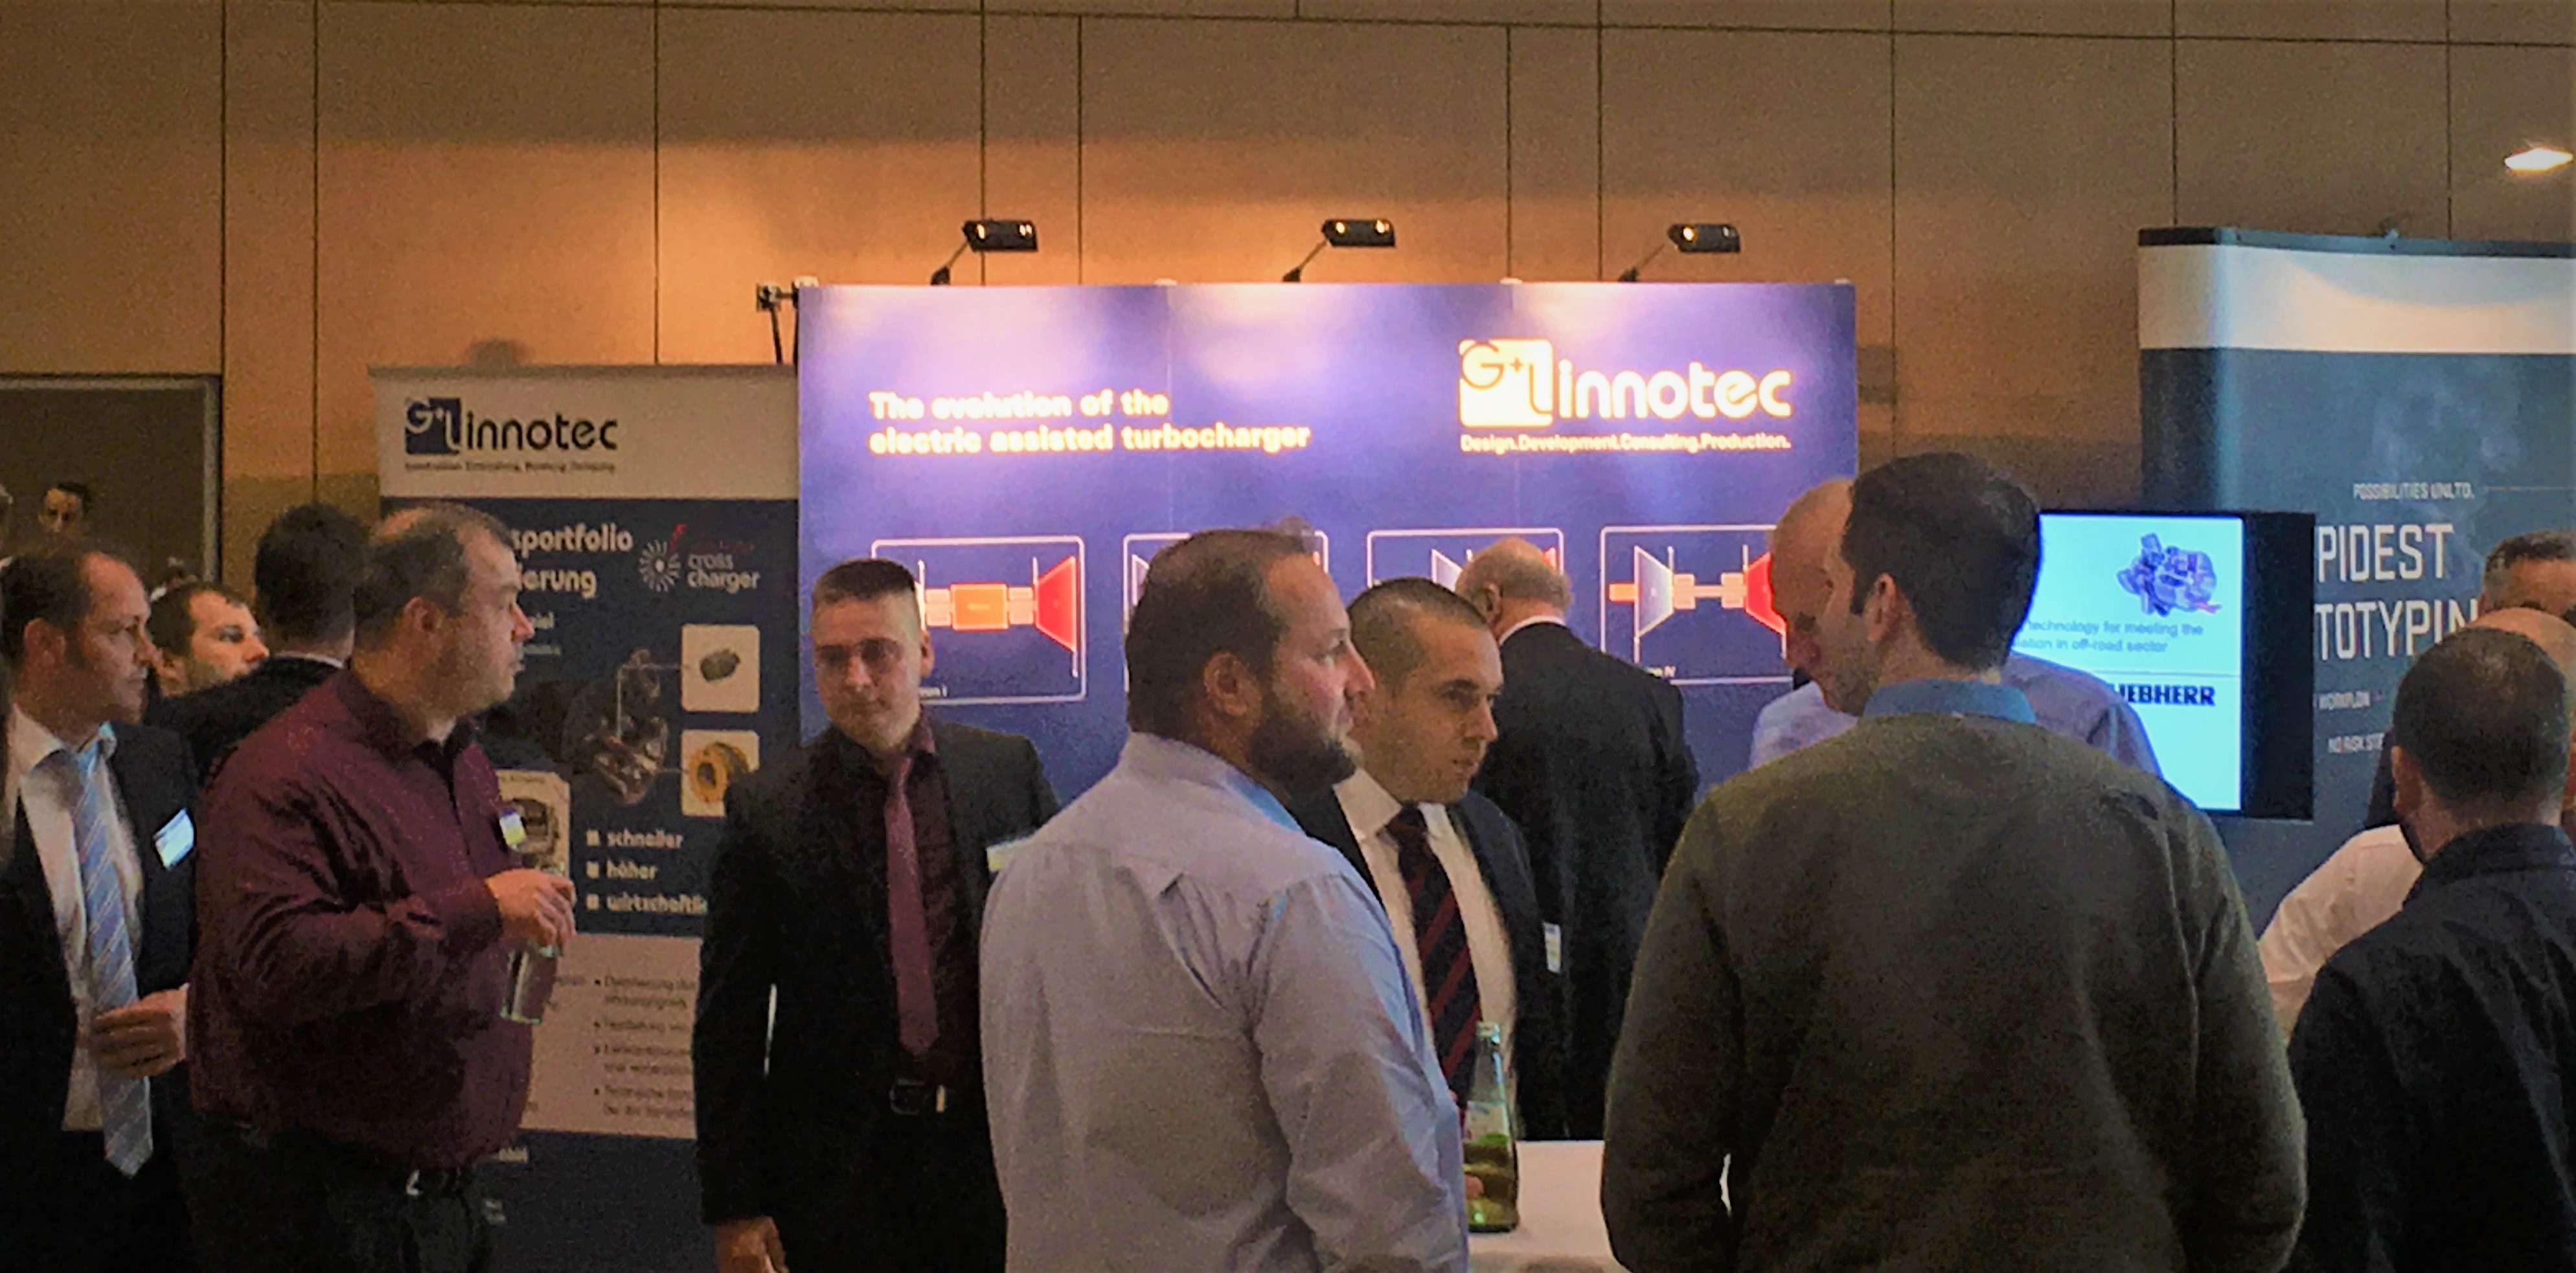 Exchange of information at the G+L innotec booth